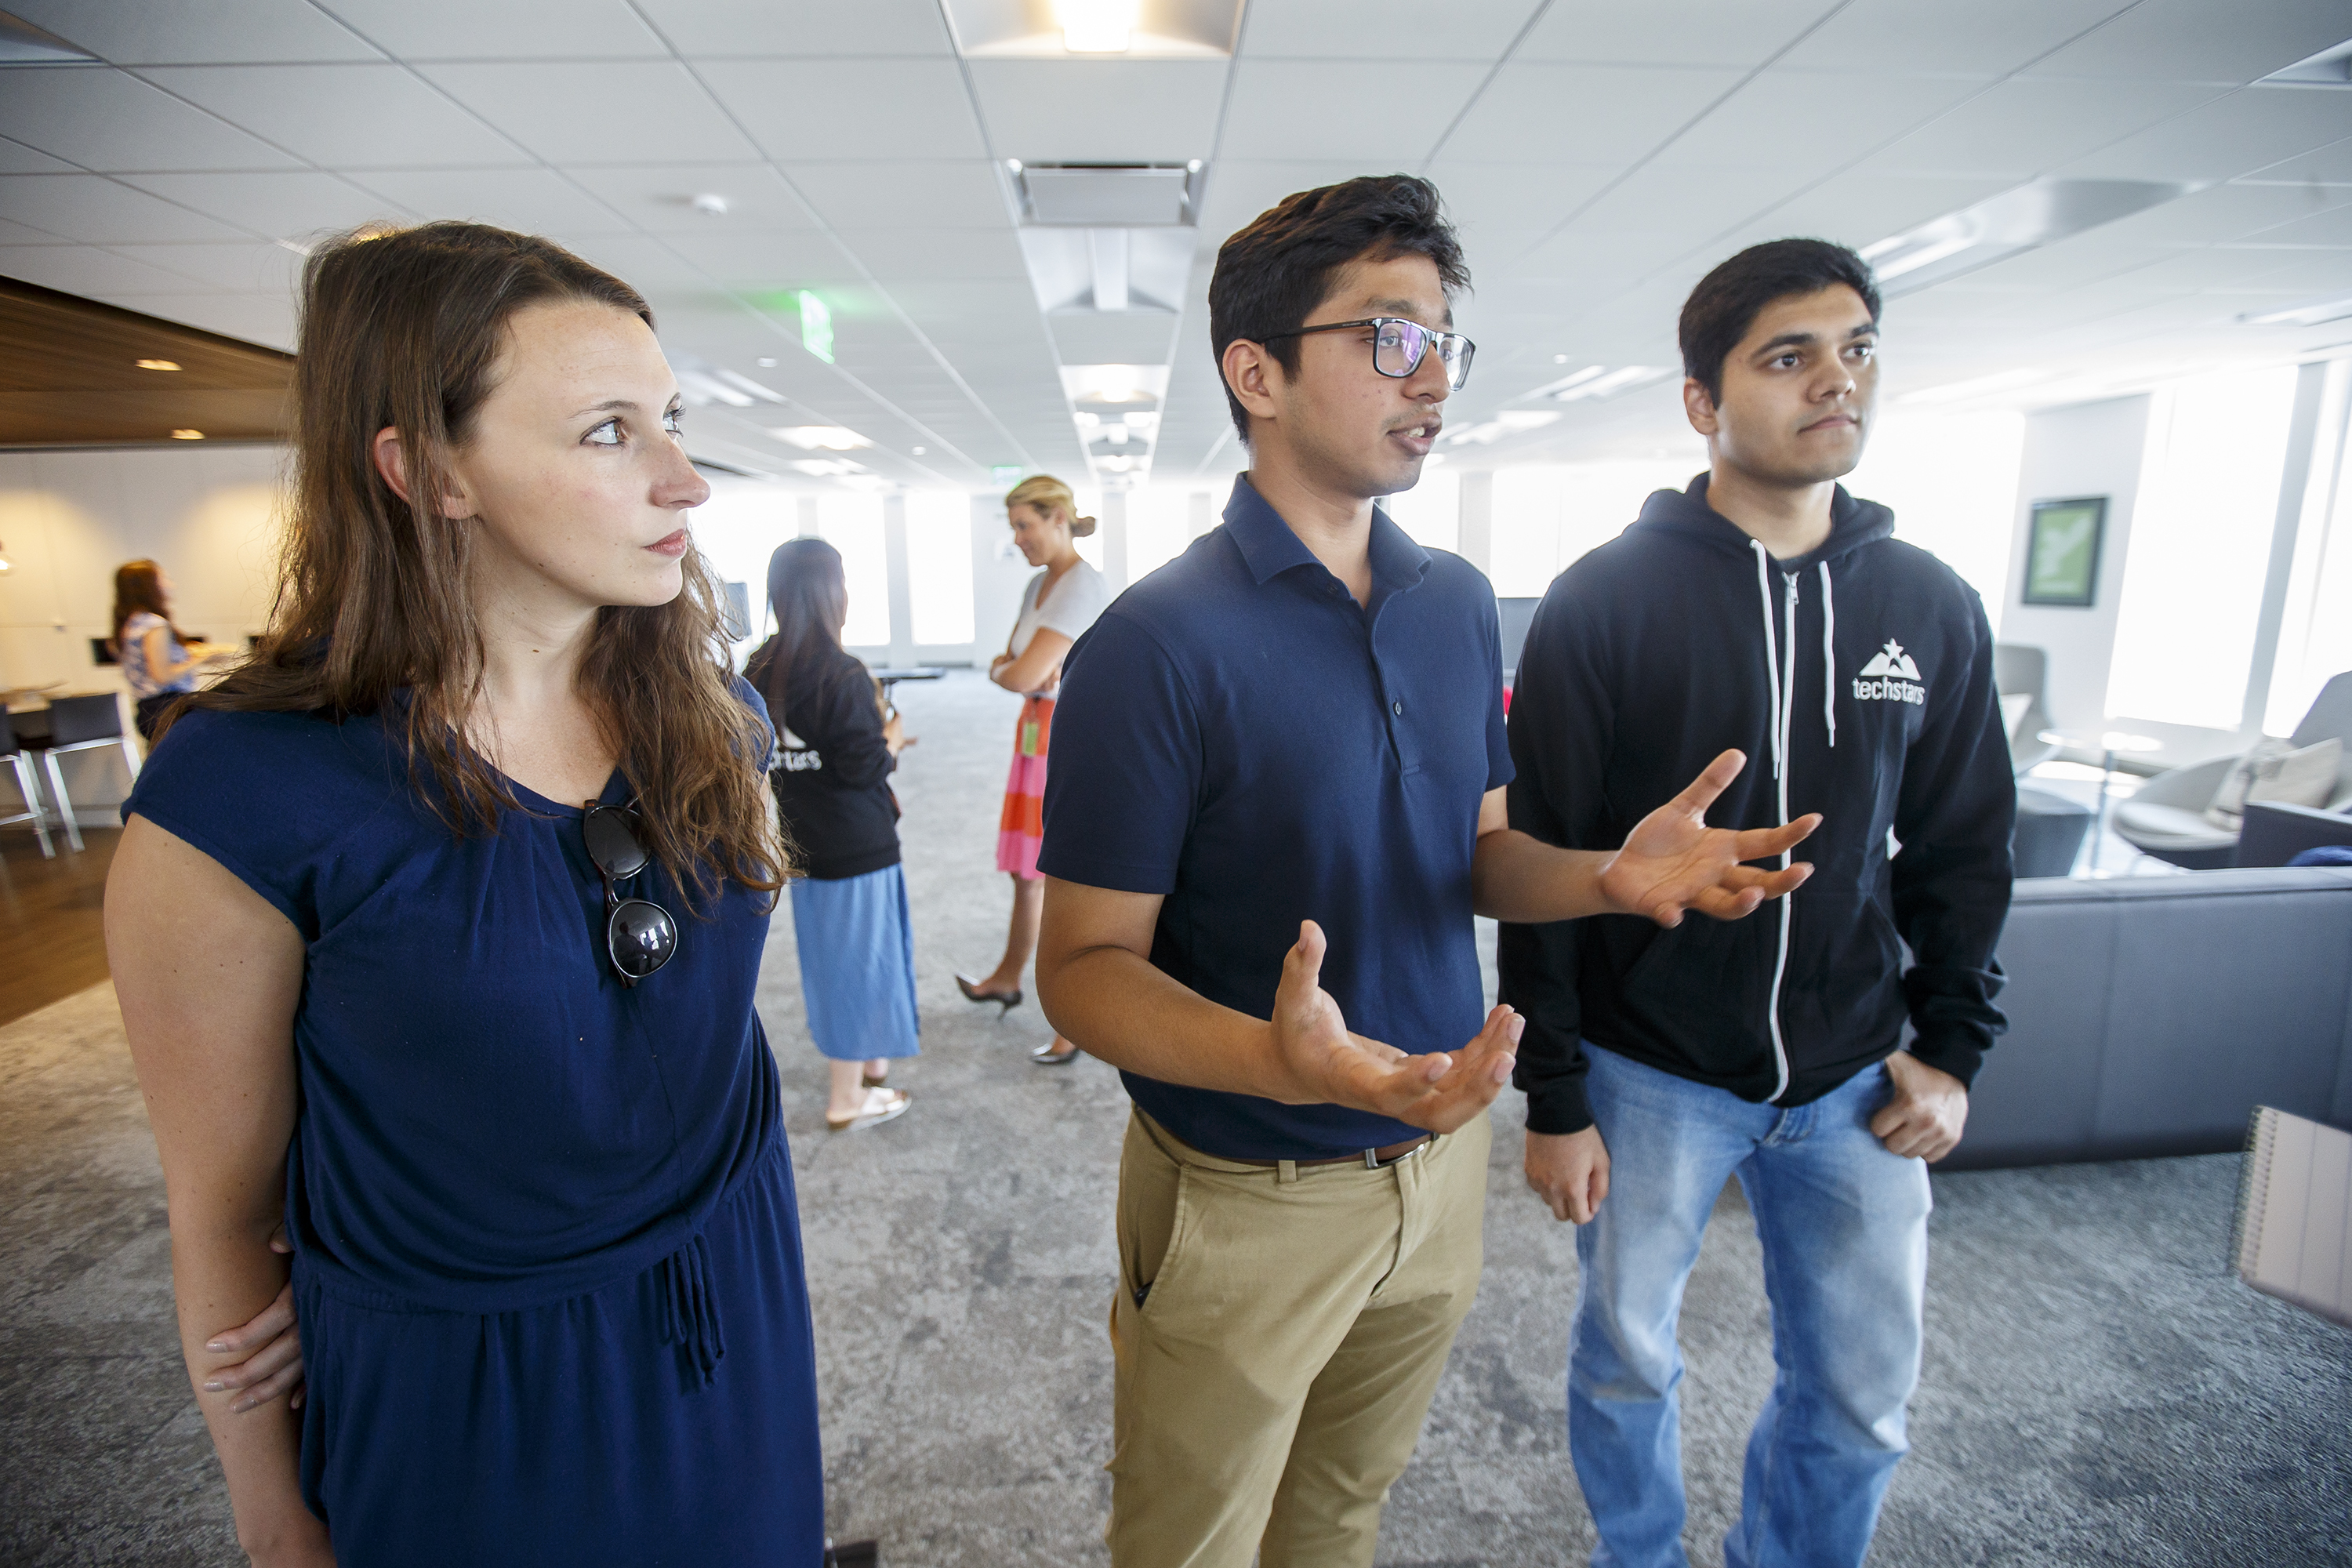 Members of Orai, from left to right, Felicia Alfieri, Paritosh Gupta and Aasim Sani, talk about Orai and its AI platform to train people to communicate better. MICHAEL BRYANT / Staff Photographer